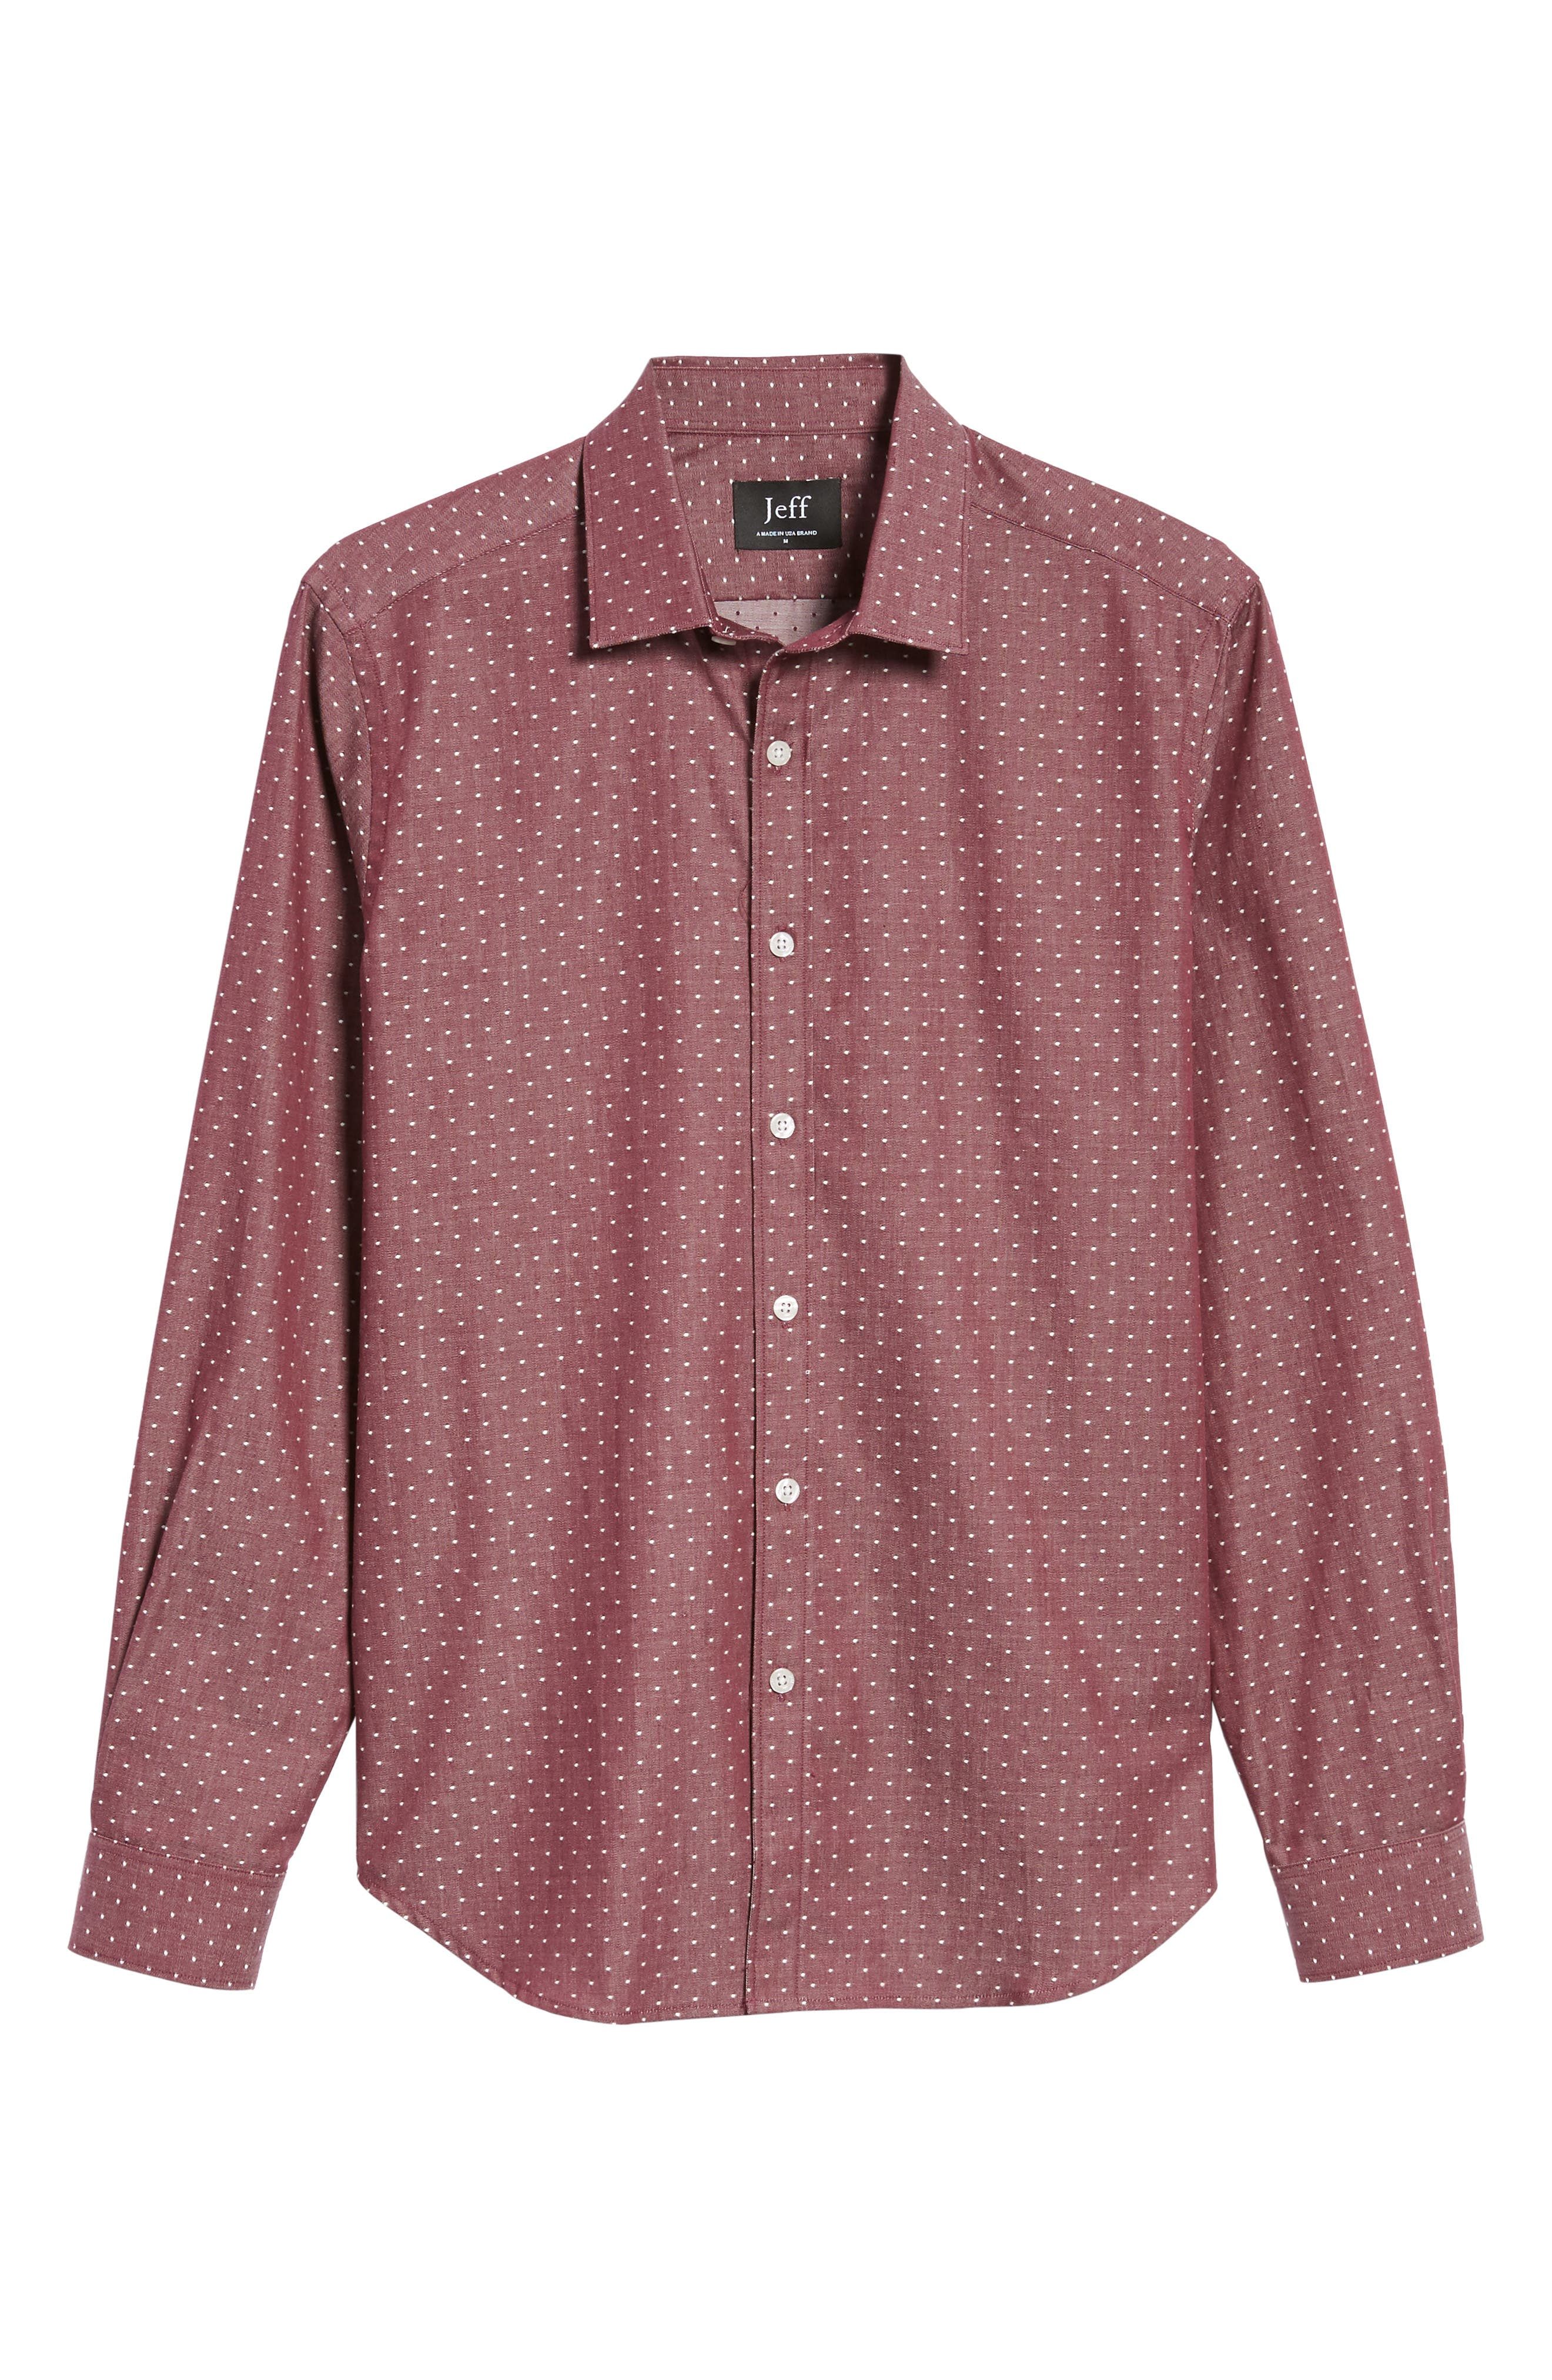 Alternate Image 5  - Jeff Slim Fit Dot Print Sport Shirt